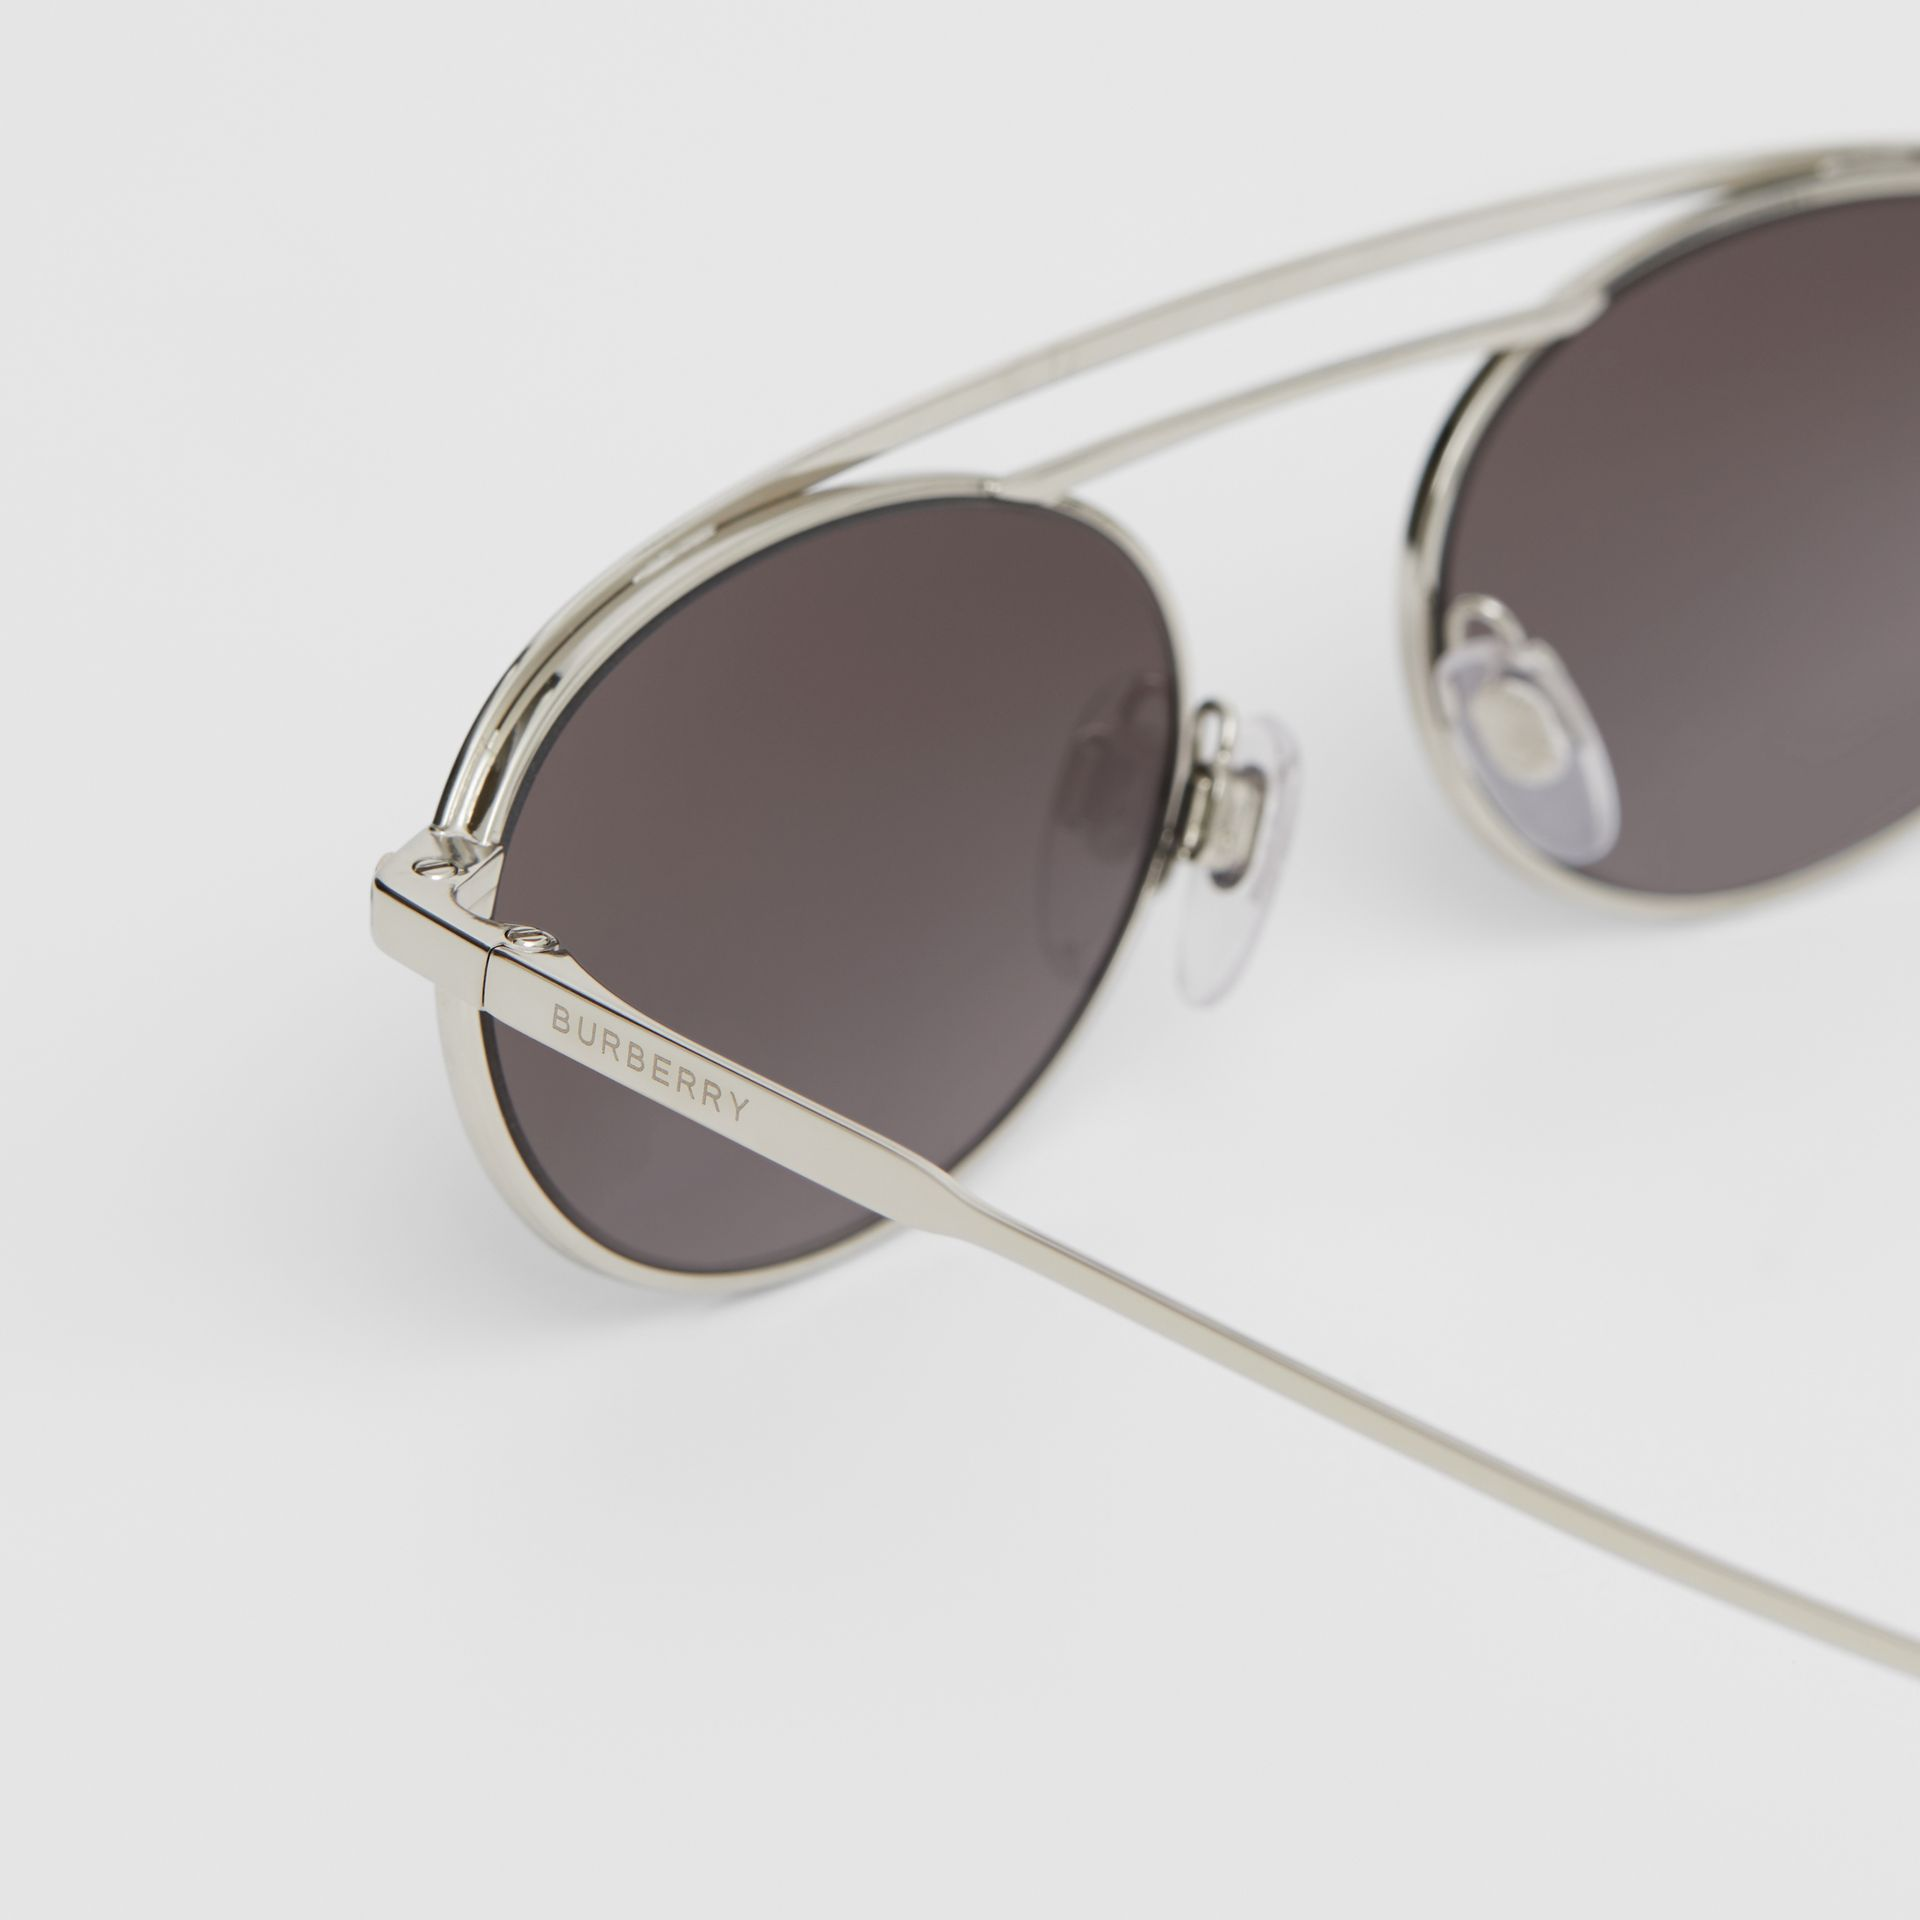 Oval Frame Sunglasses in Grey - Women | Burberry Australia - gallery image 1